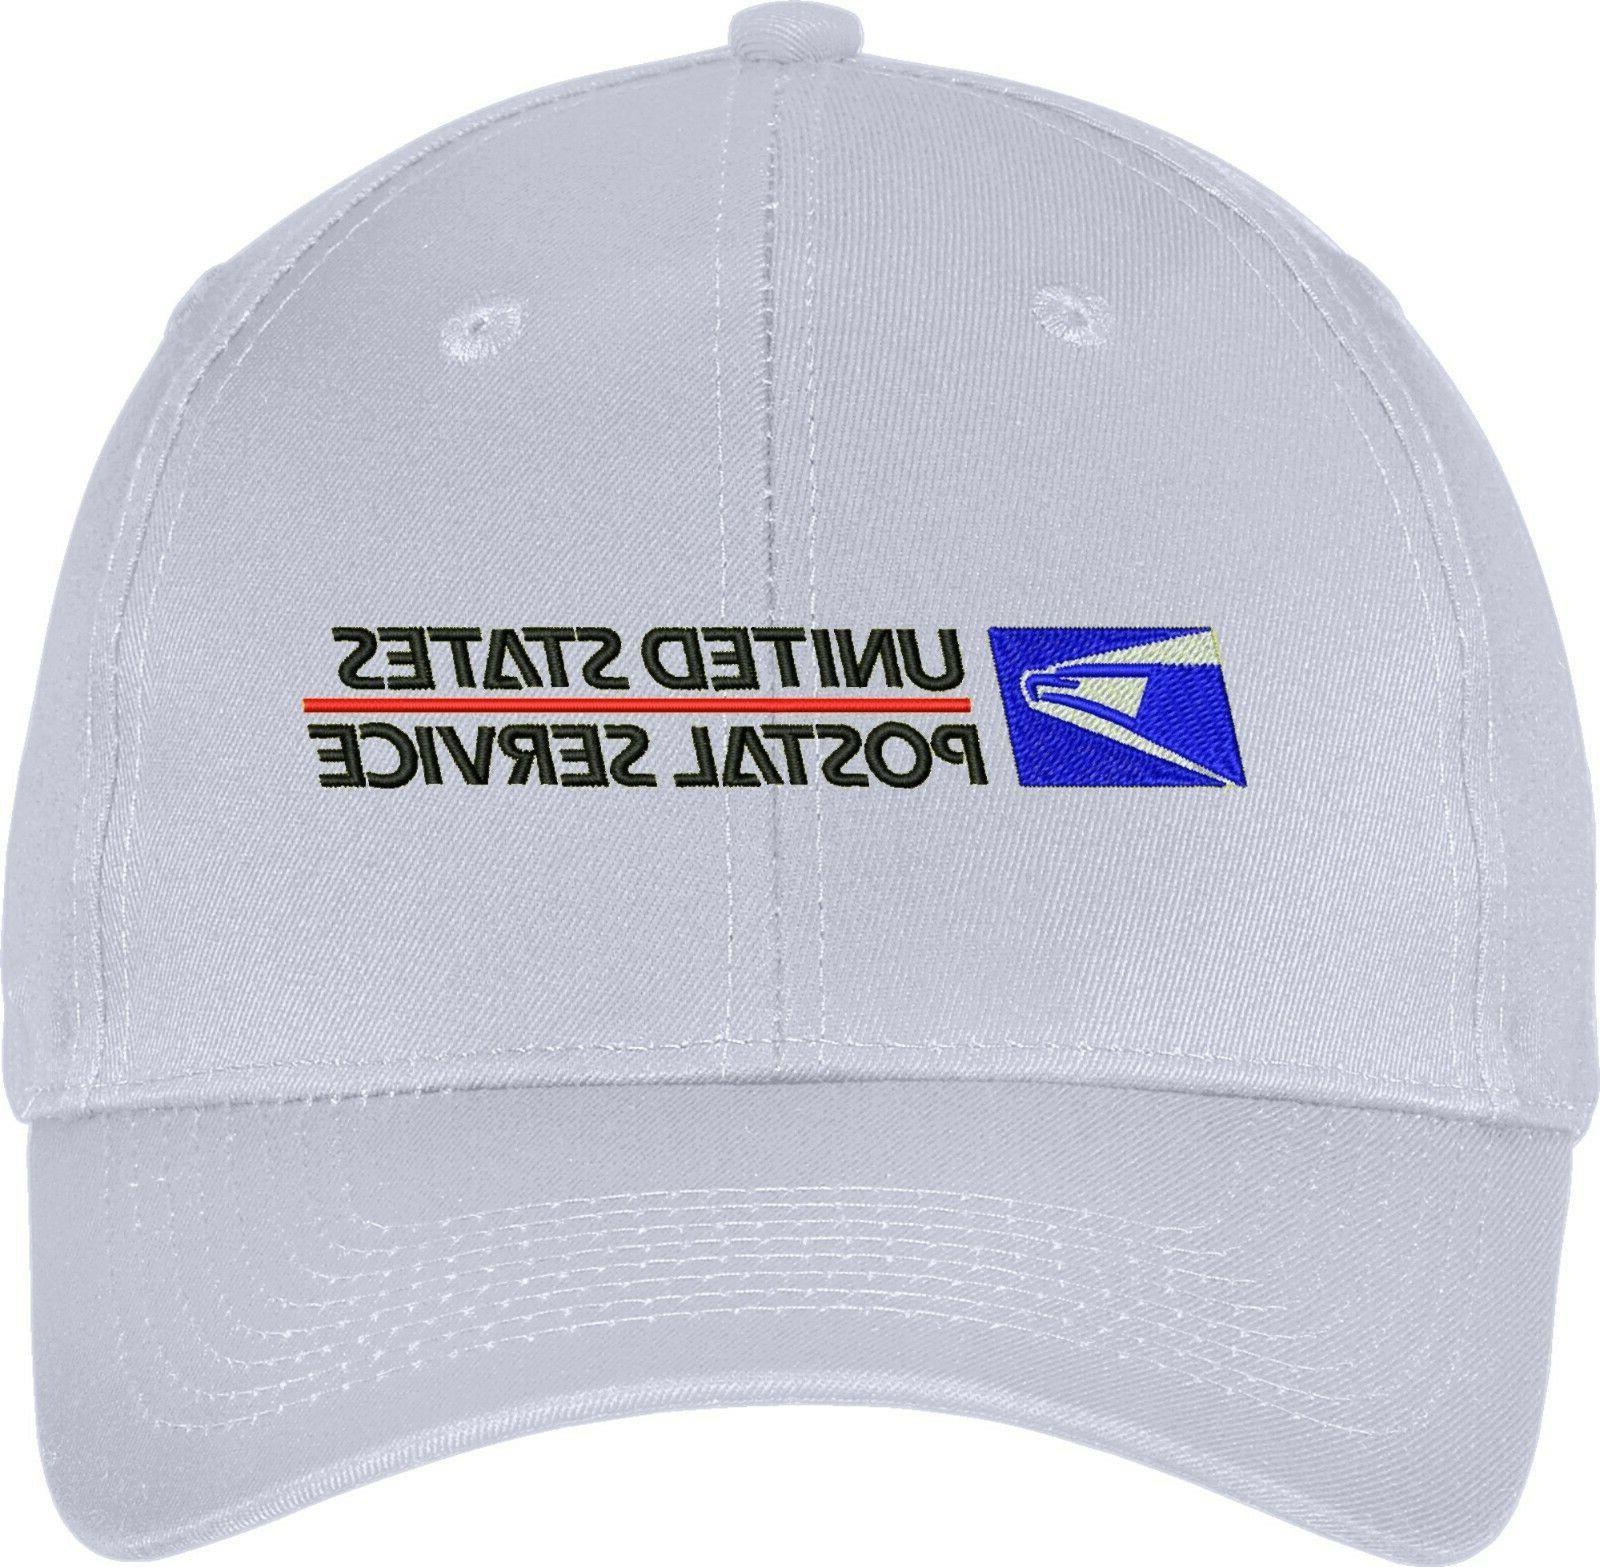 USPS Post Office Hat Baseball - Embroidered